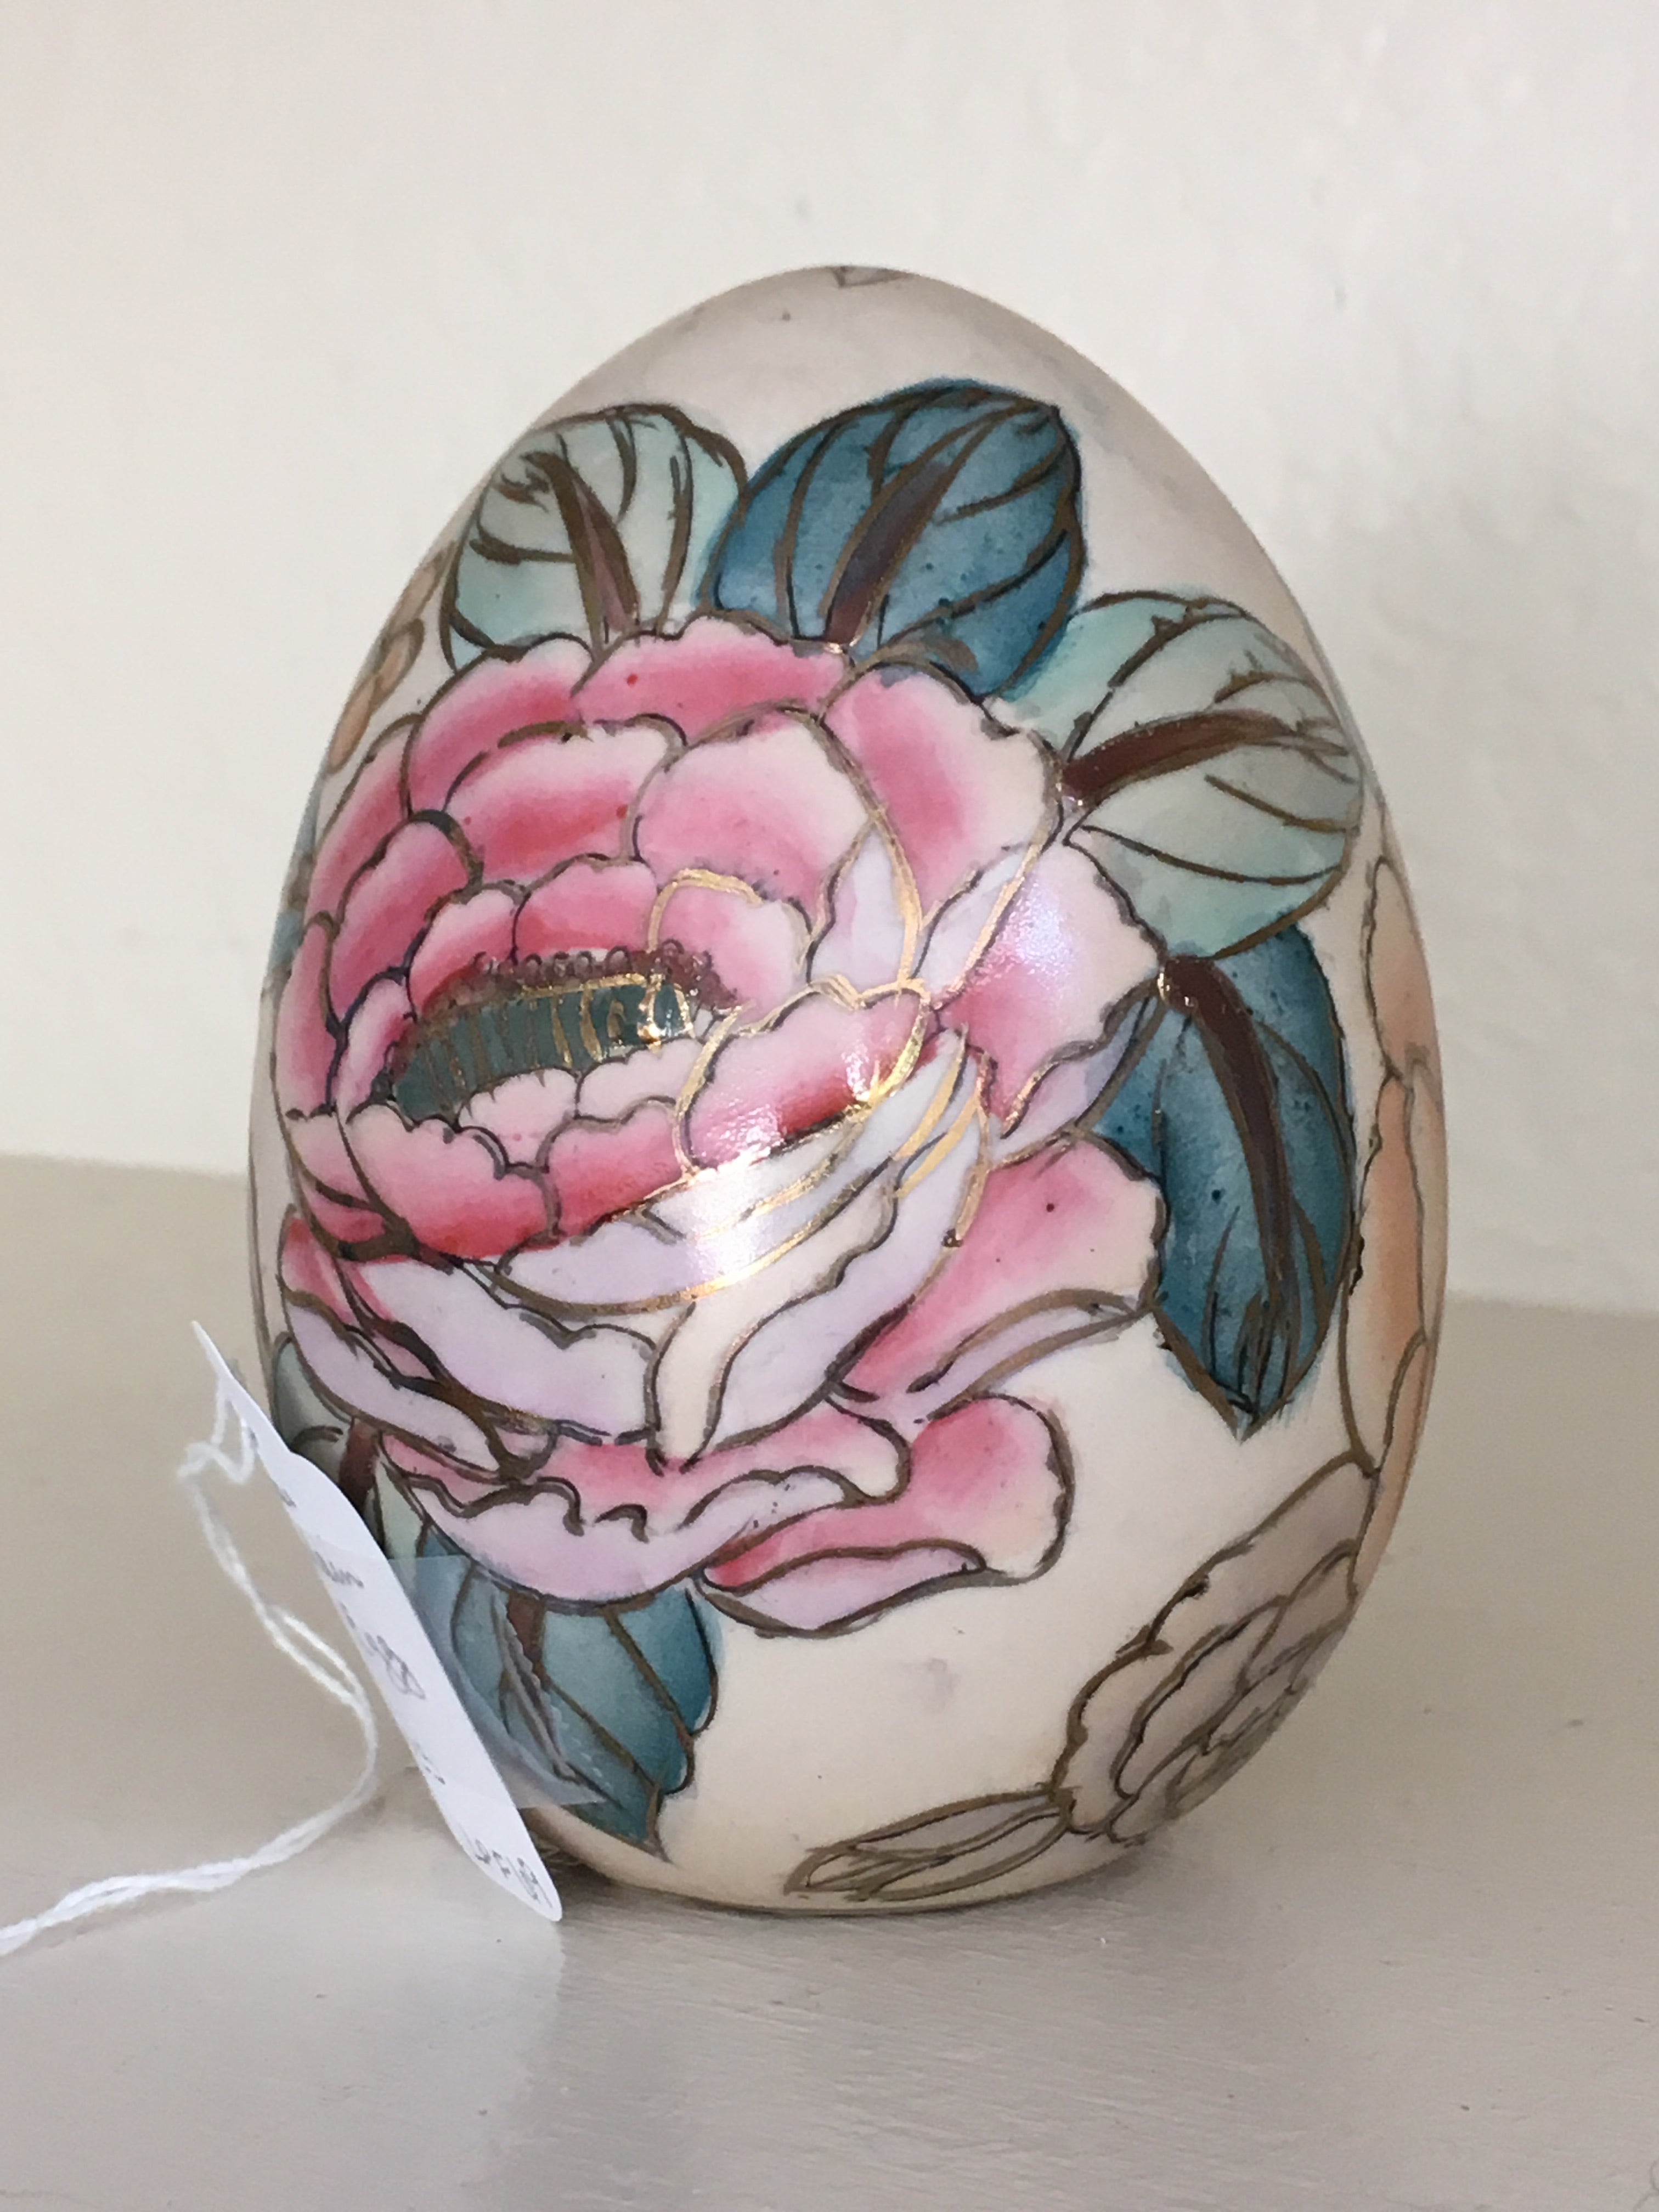 Chinese Porcelain Gold Highlighted Egg with Floral Design